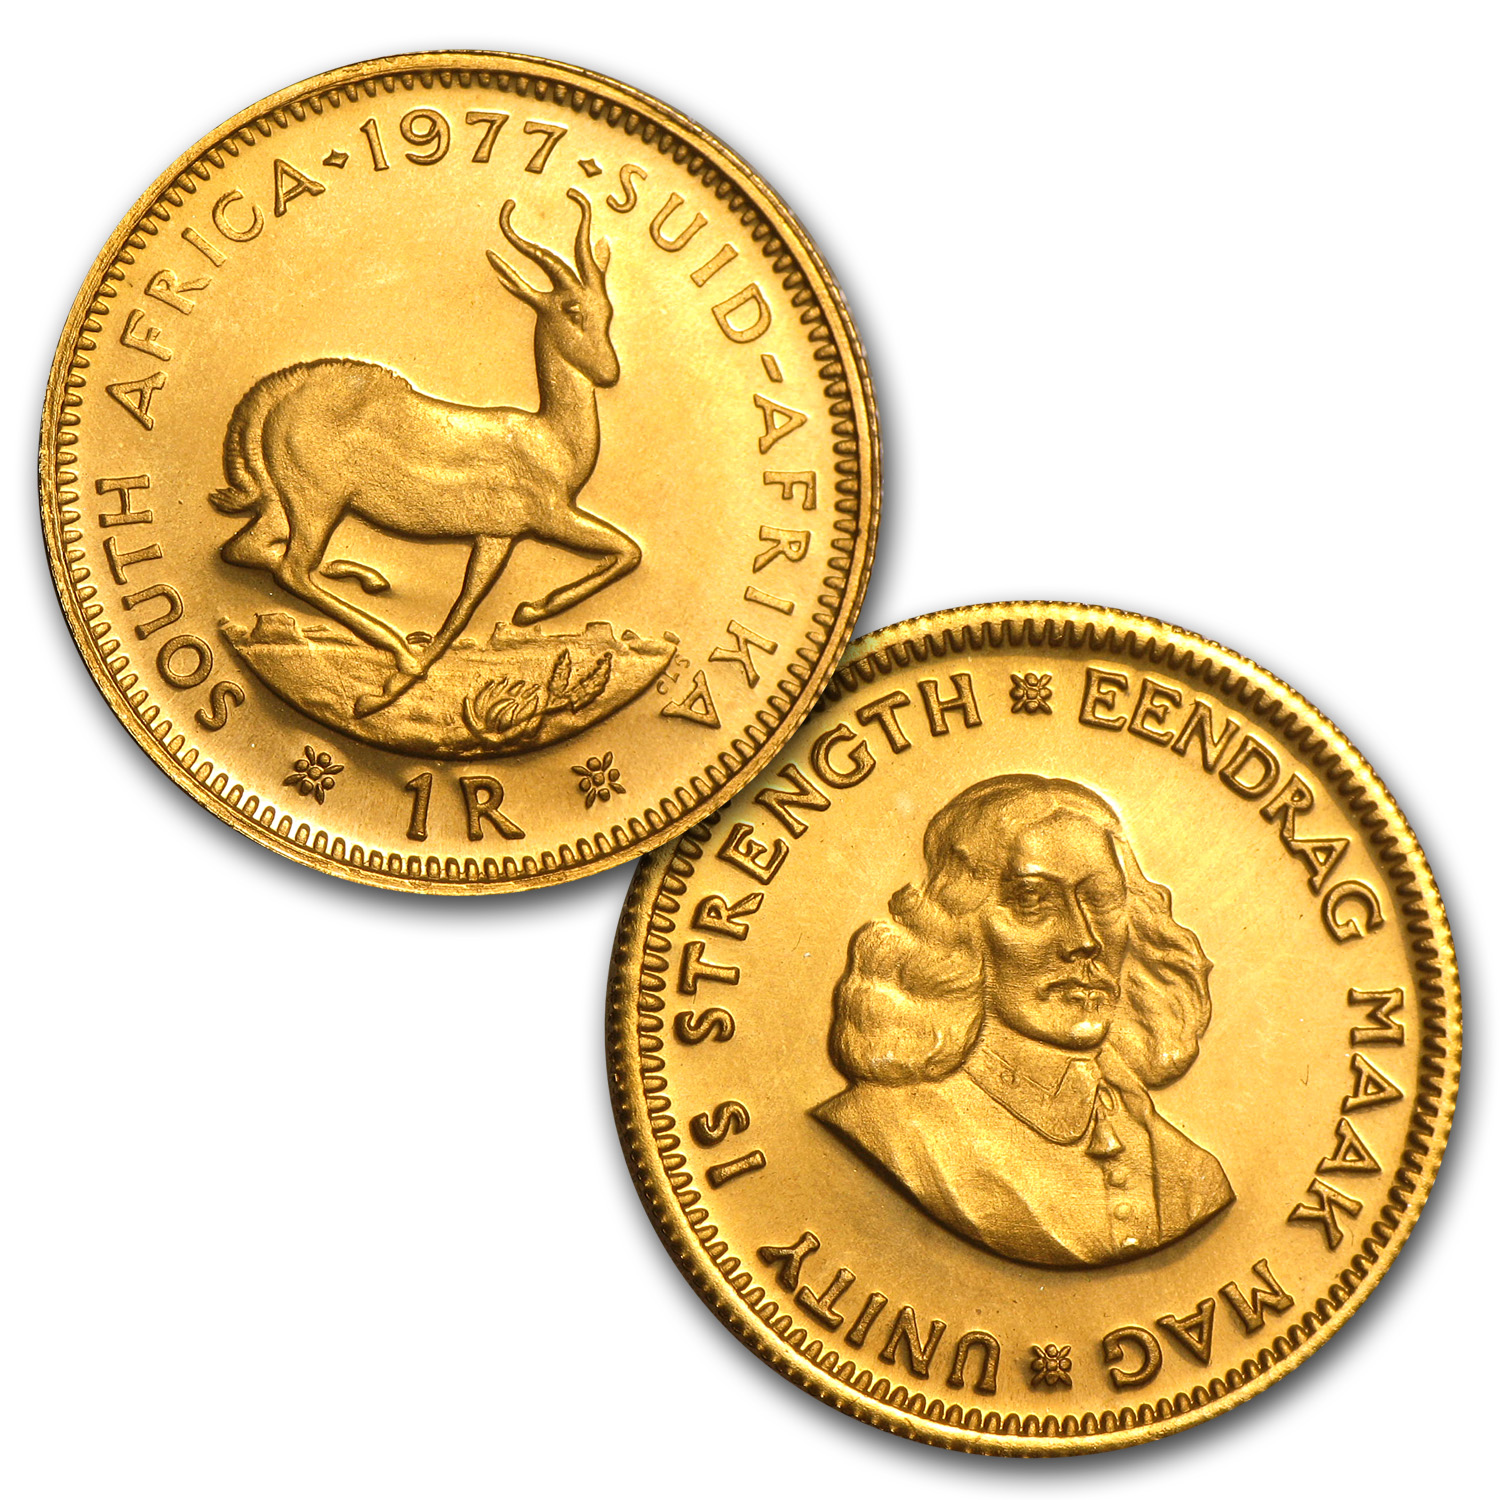 South Africa 1977 2 Coin Gold Proof Set